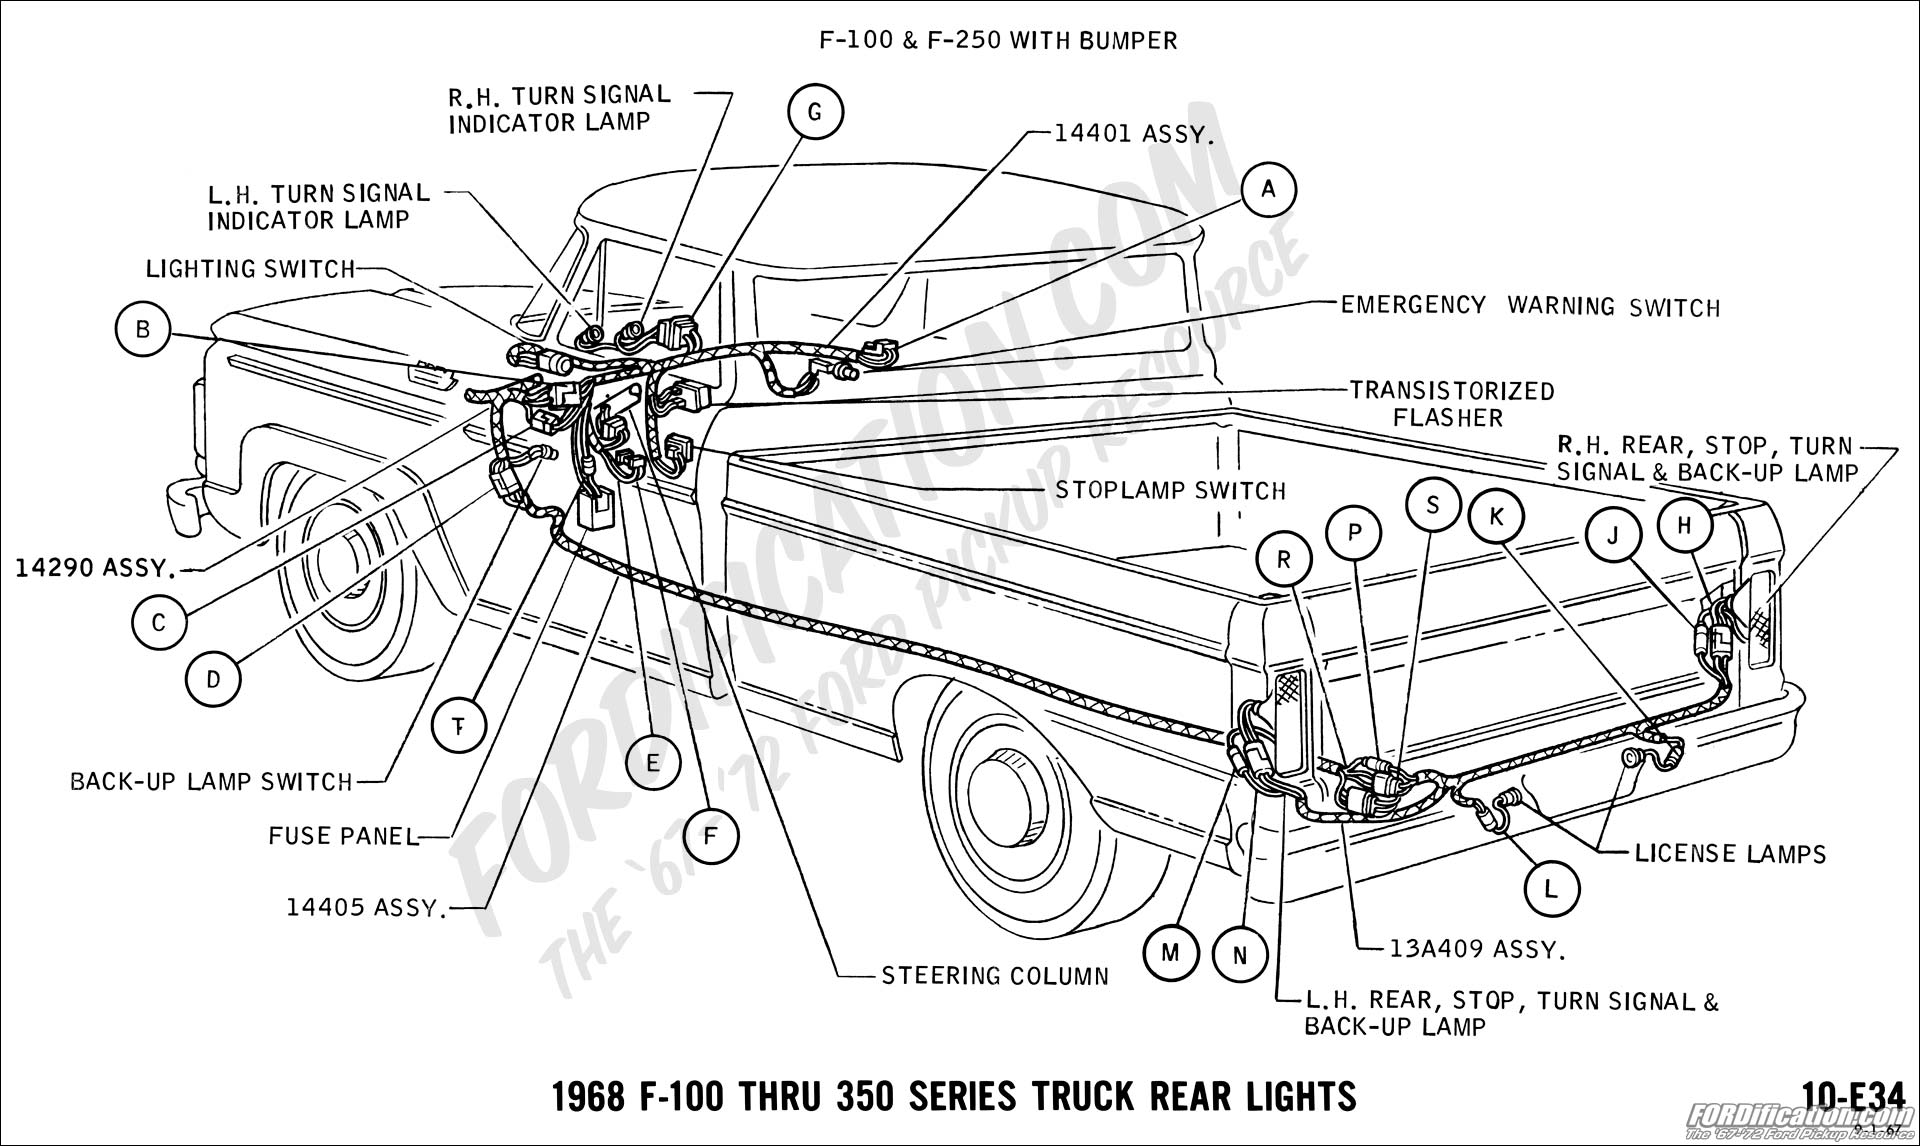 1301216 71 F100 Electrical Help besides Dodge 2500 Sel Wiring Diagram besides 57 Ford Truck Tail Lights Wiring in addition Transmission Cooler Lines Flow Direction 37080 furthermore 36z45 Need Wiring Diagram Tail Lights 97 Nissan King Cap. on chevy backup camera wiring diagram